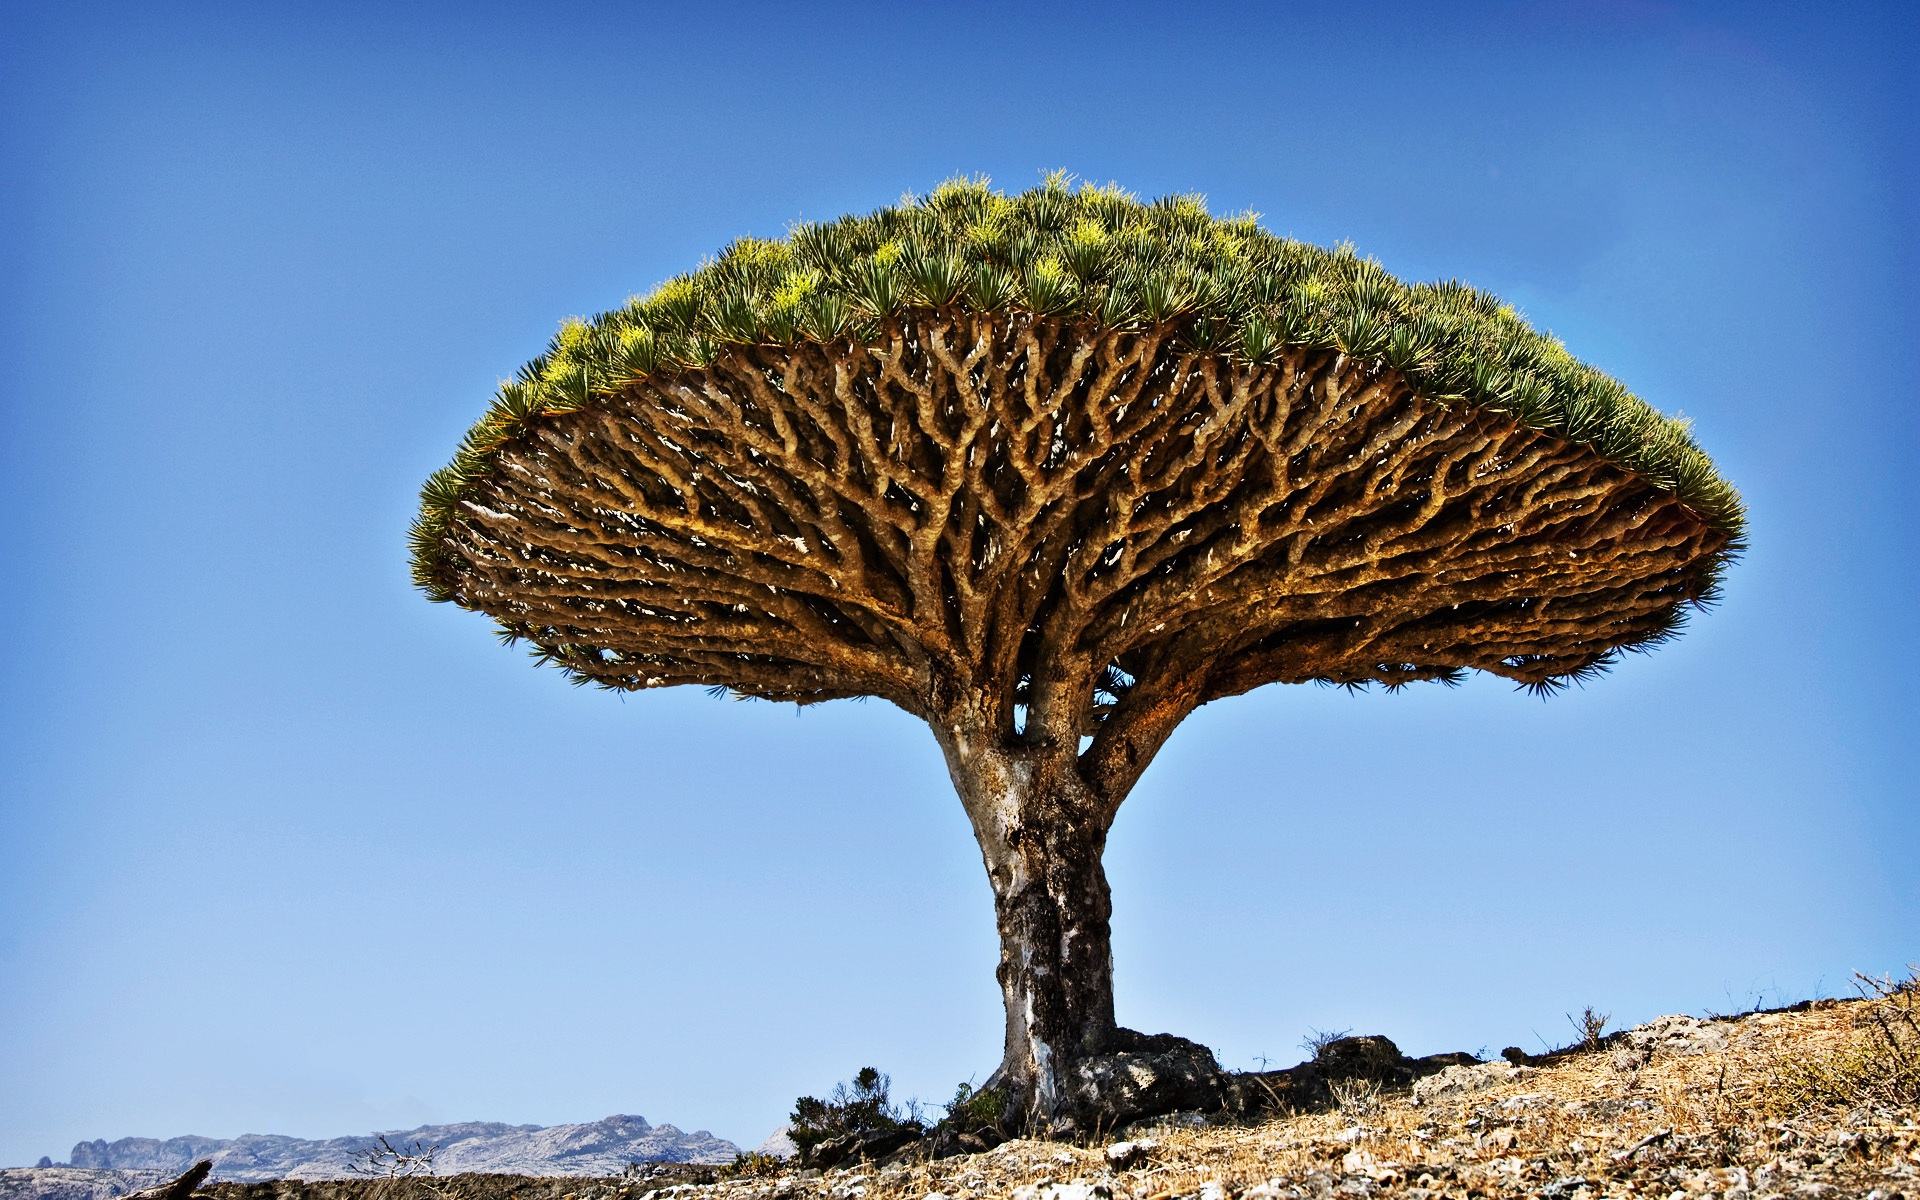 Discovery Channel Hd Wallpapers The Mushroom Shaped Dragon Blood Tree Full Hd Wallpaper